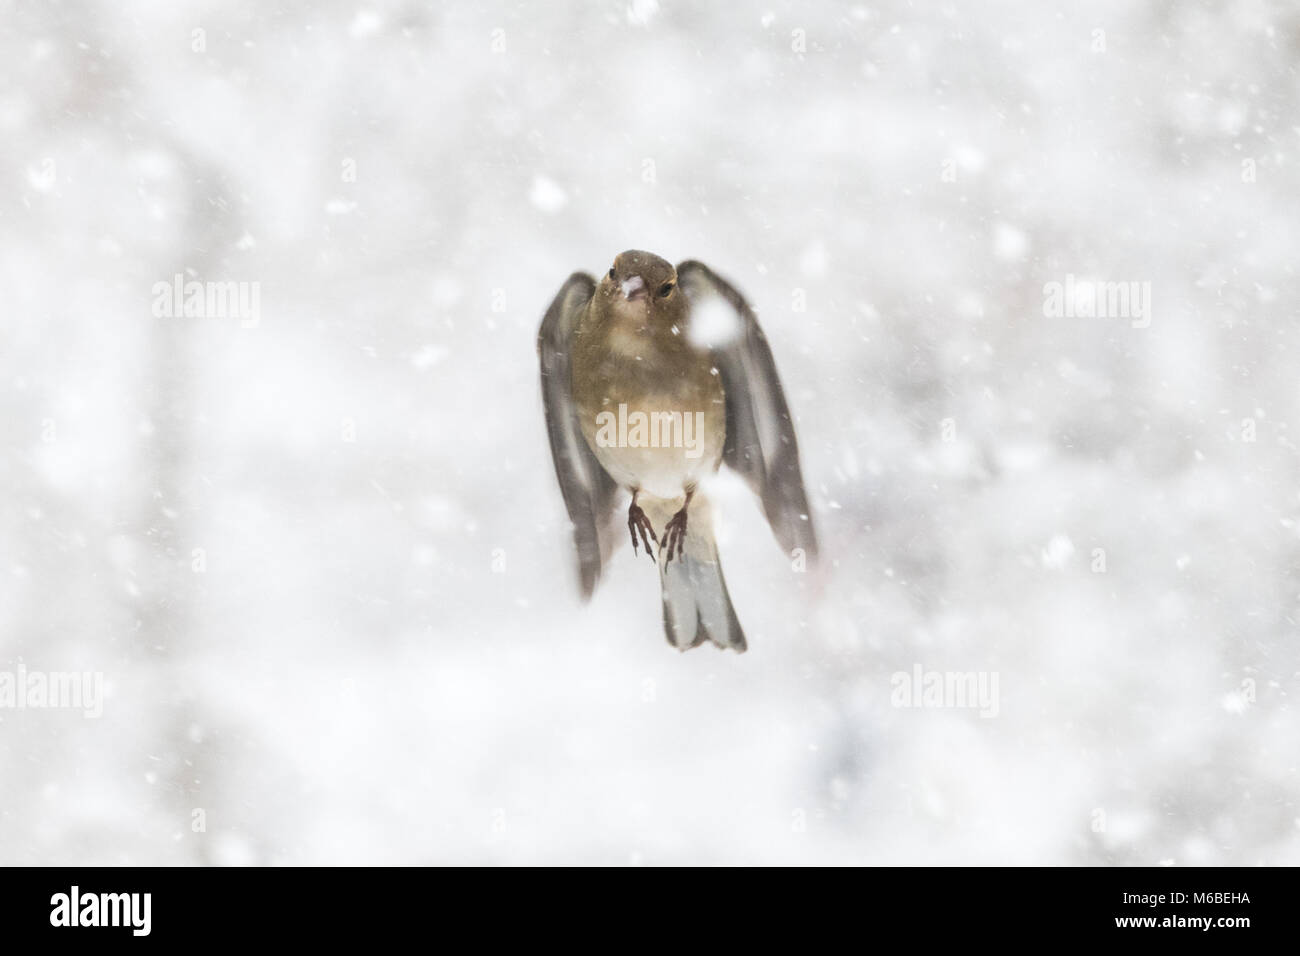 female chaffinch flying through snow - Stock Image